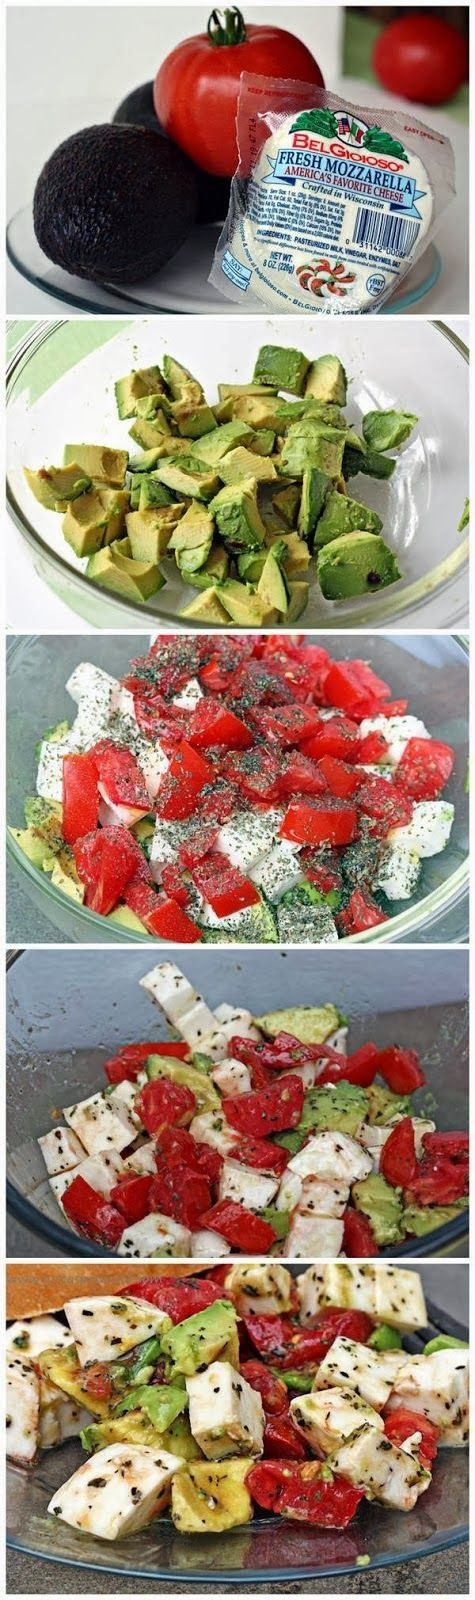 MOZZARELLA AVOCADO TOMATO SALAD can't wait for summer